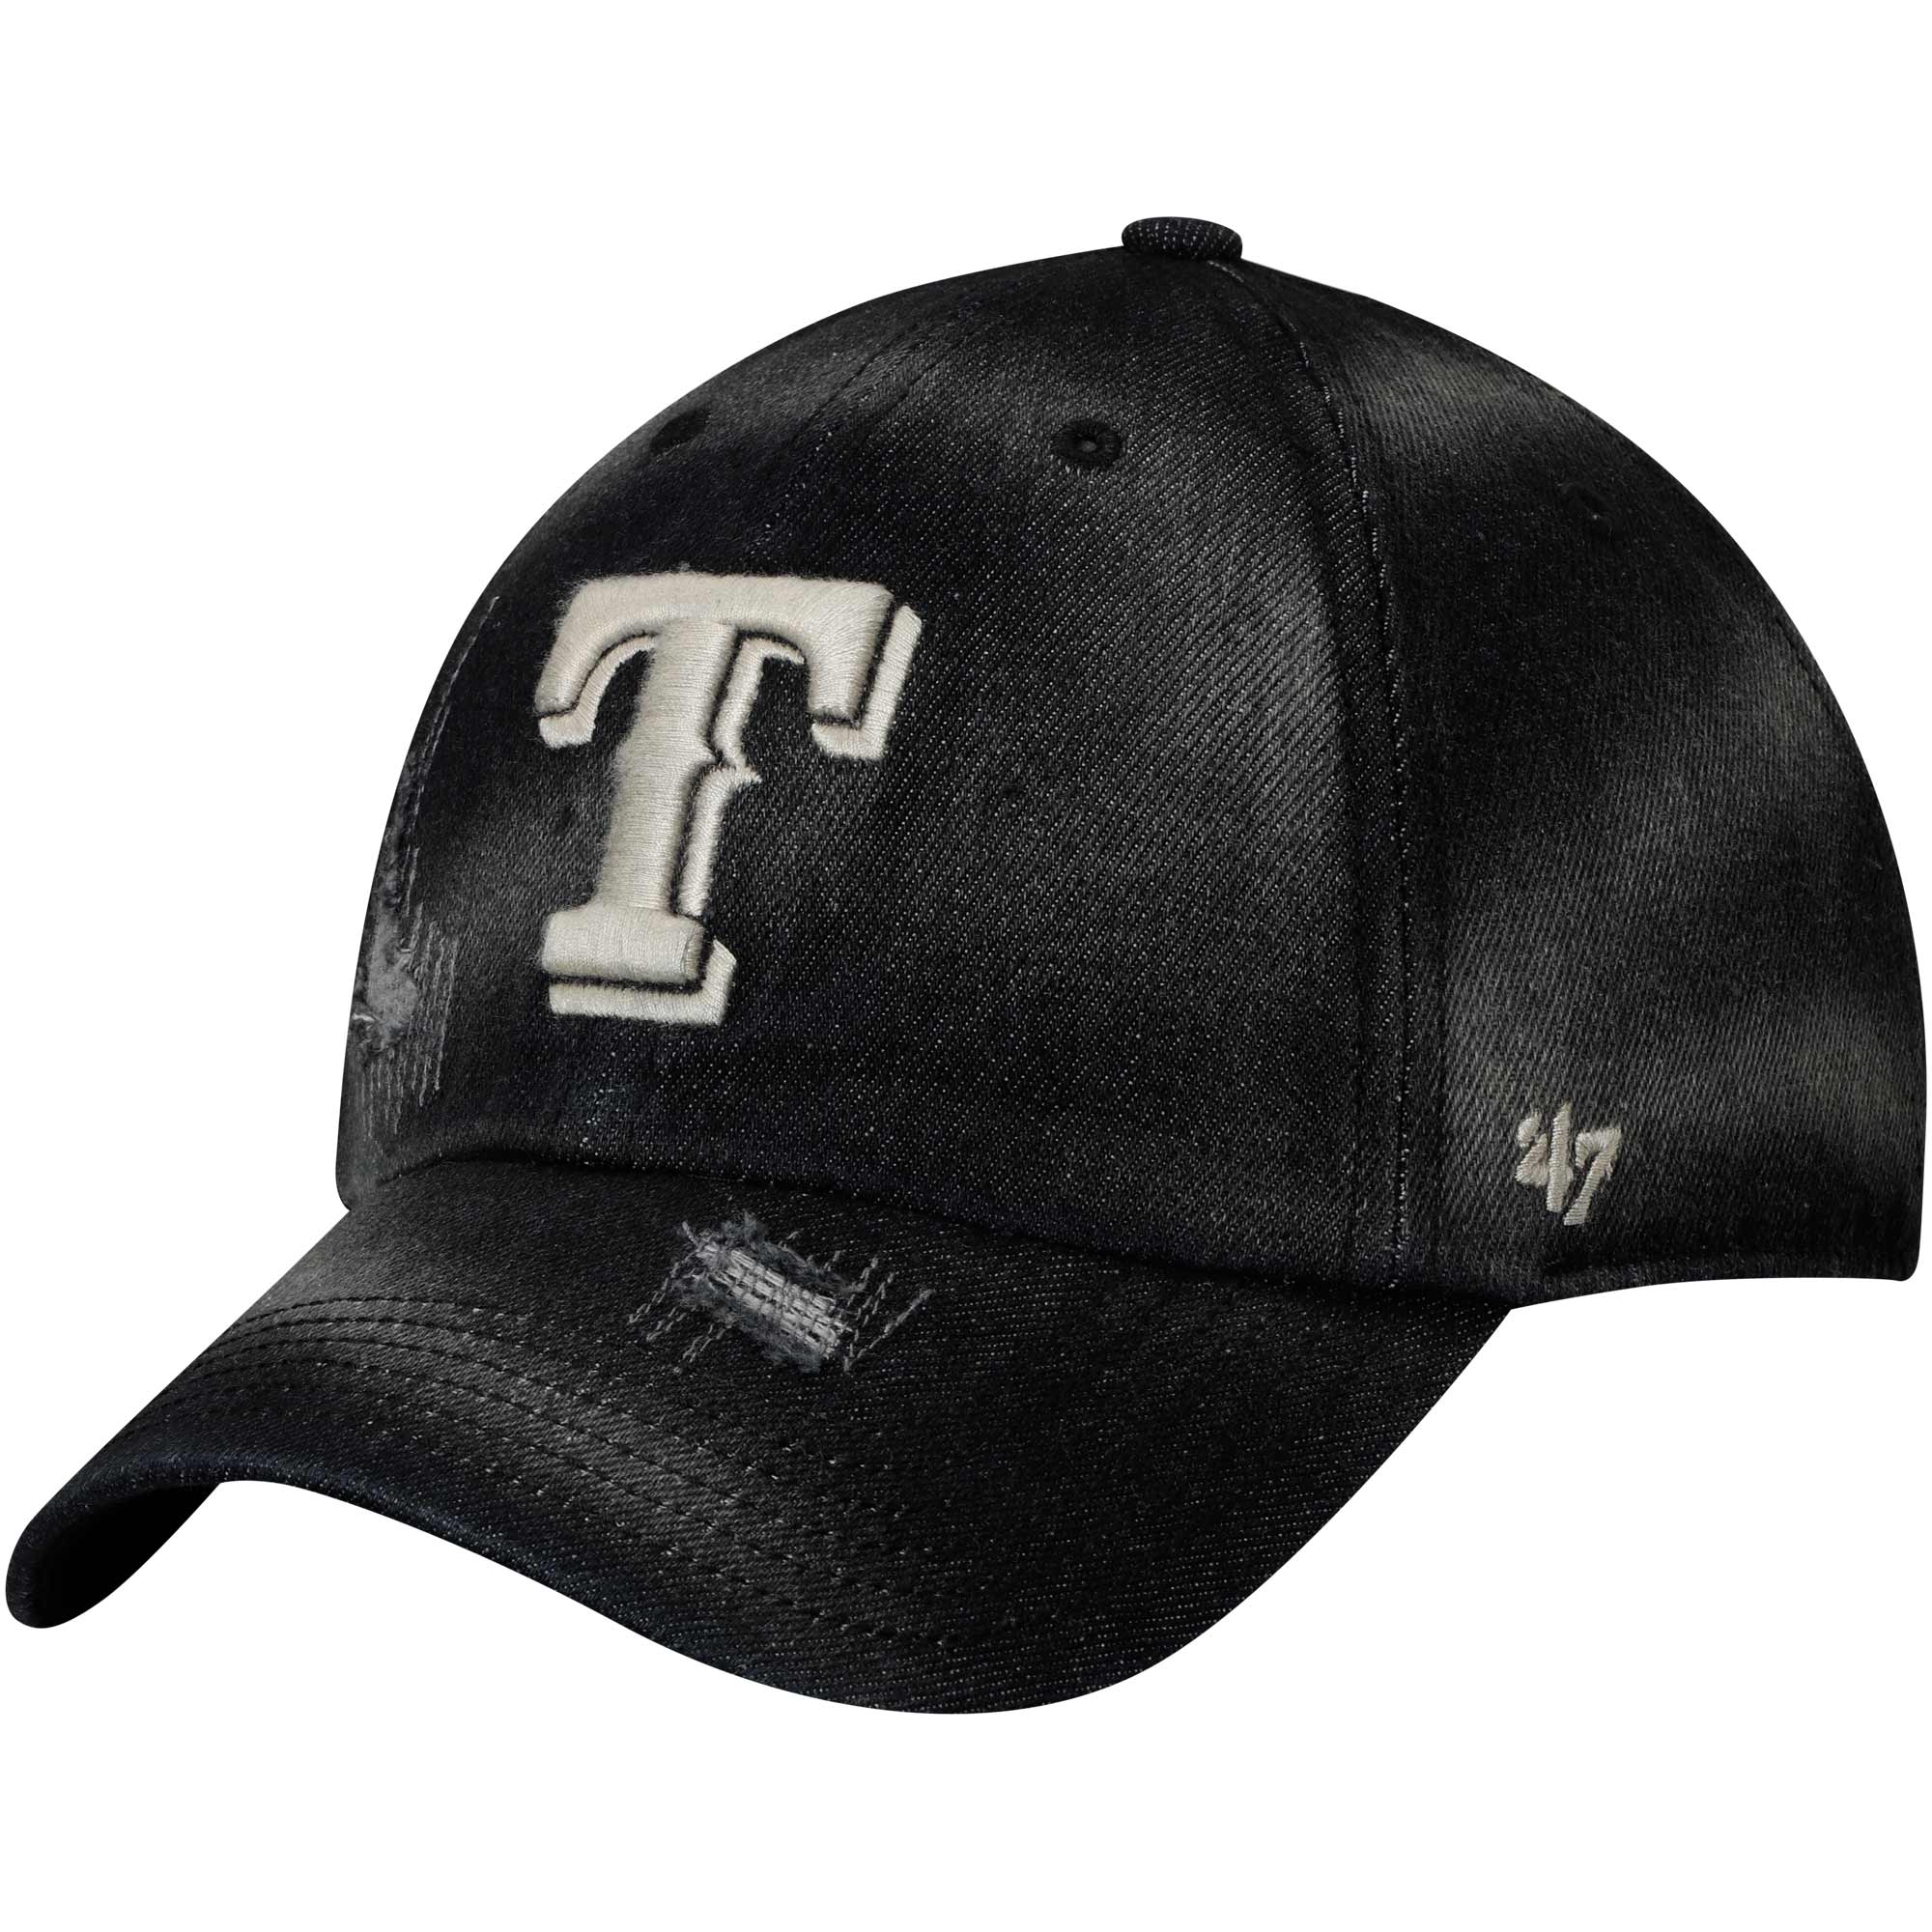 Texas Rangers '47 Loughlin Clean Up Adjustable Hat - Black